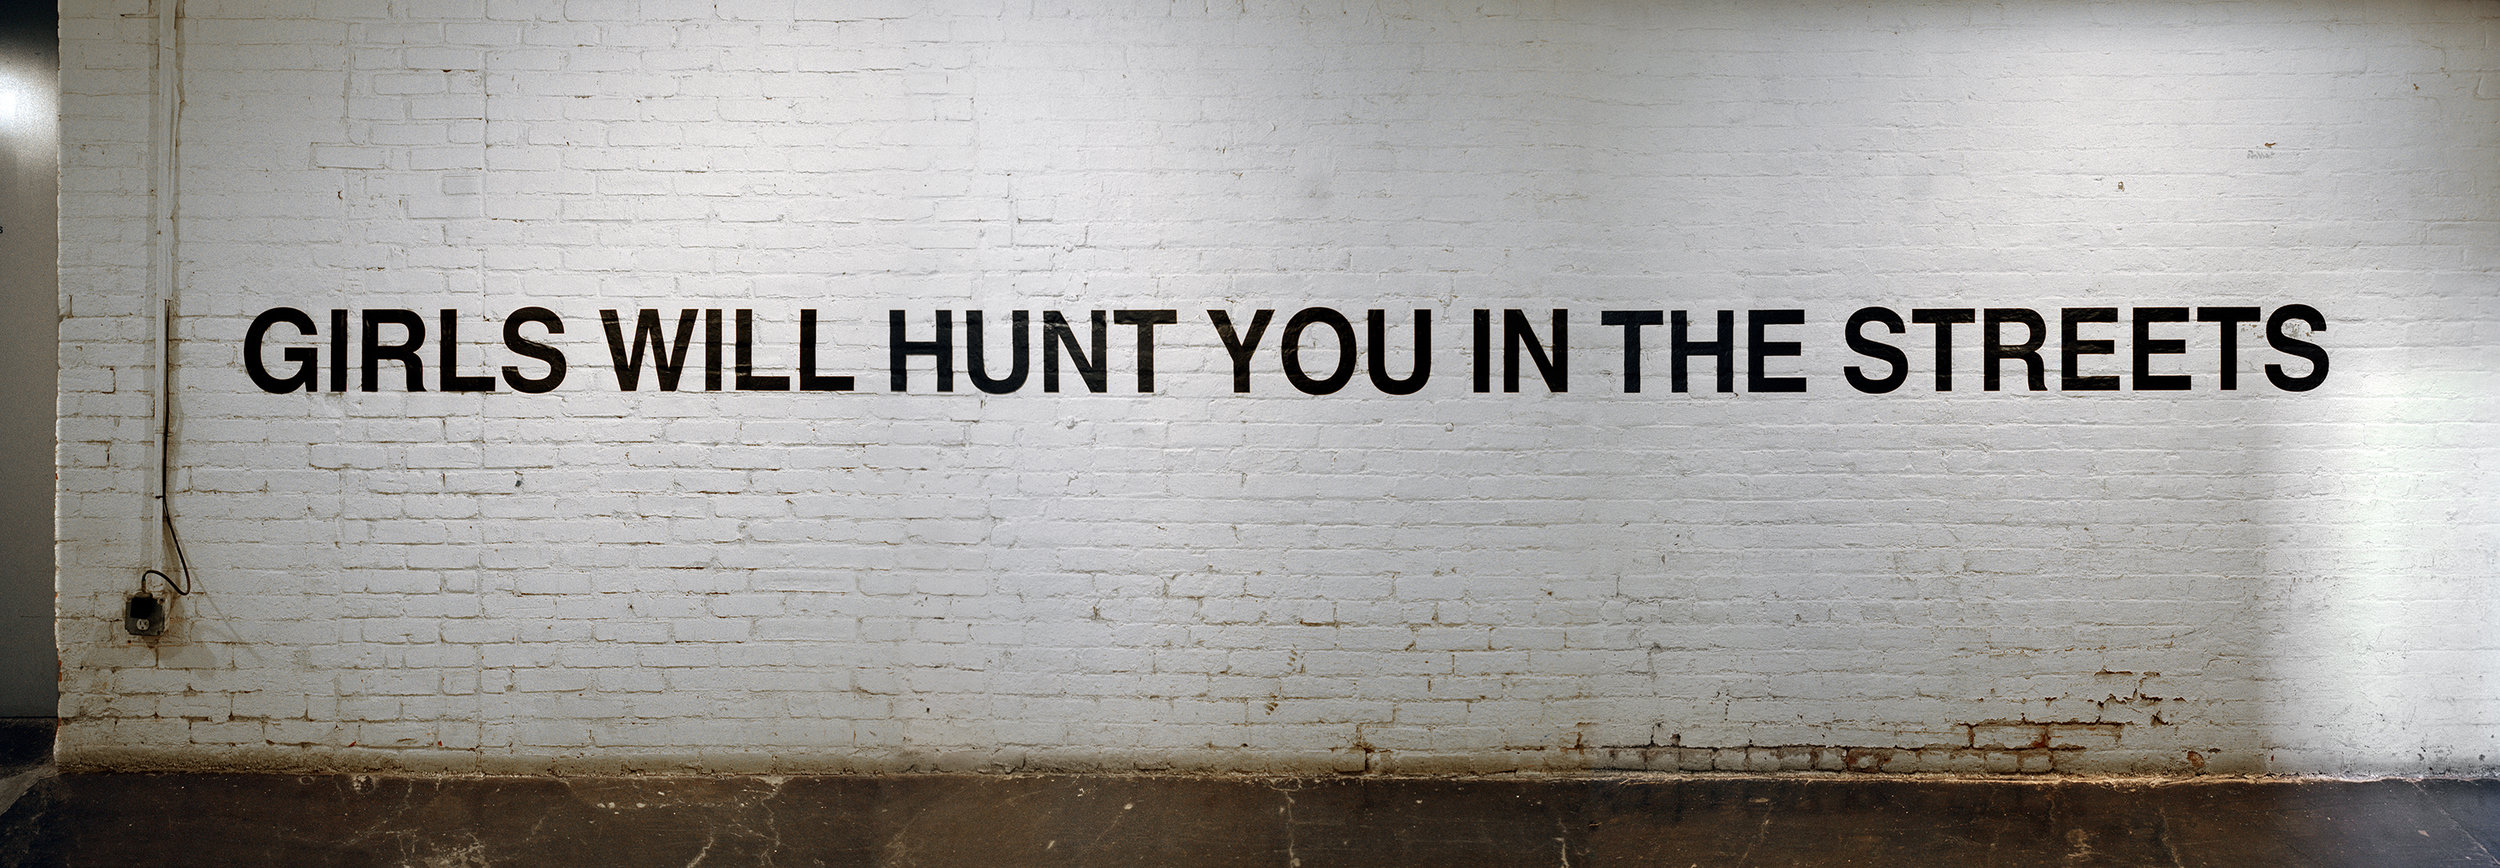 Girls will hunt you in the streets. 2010